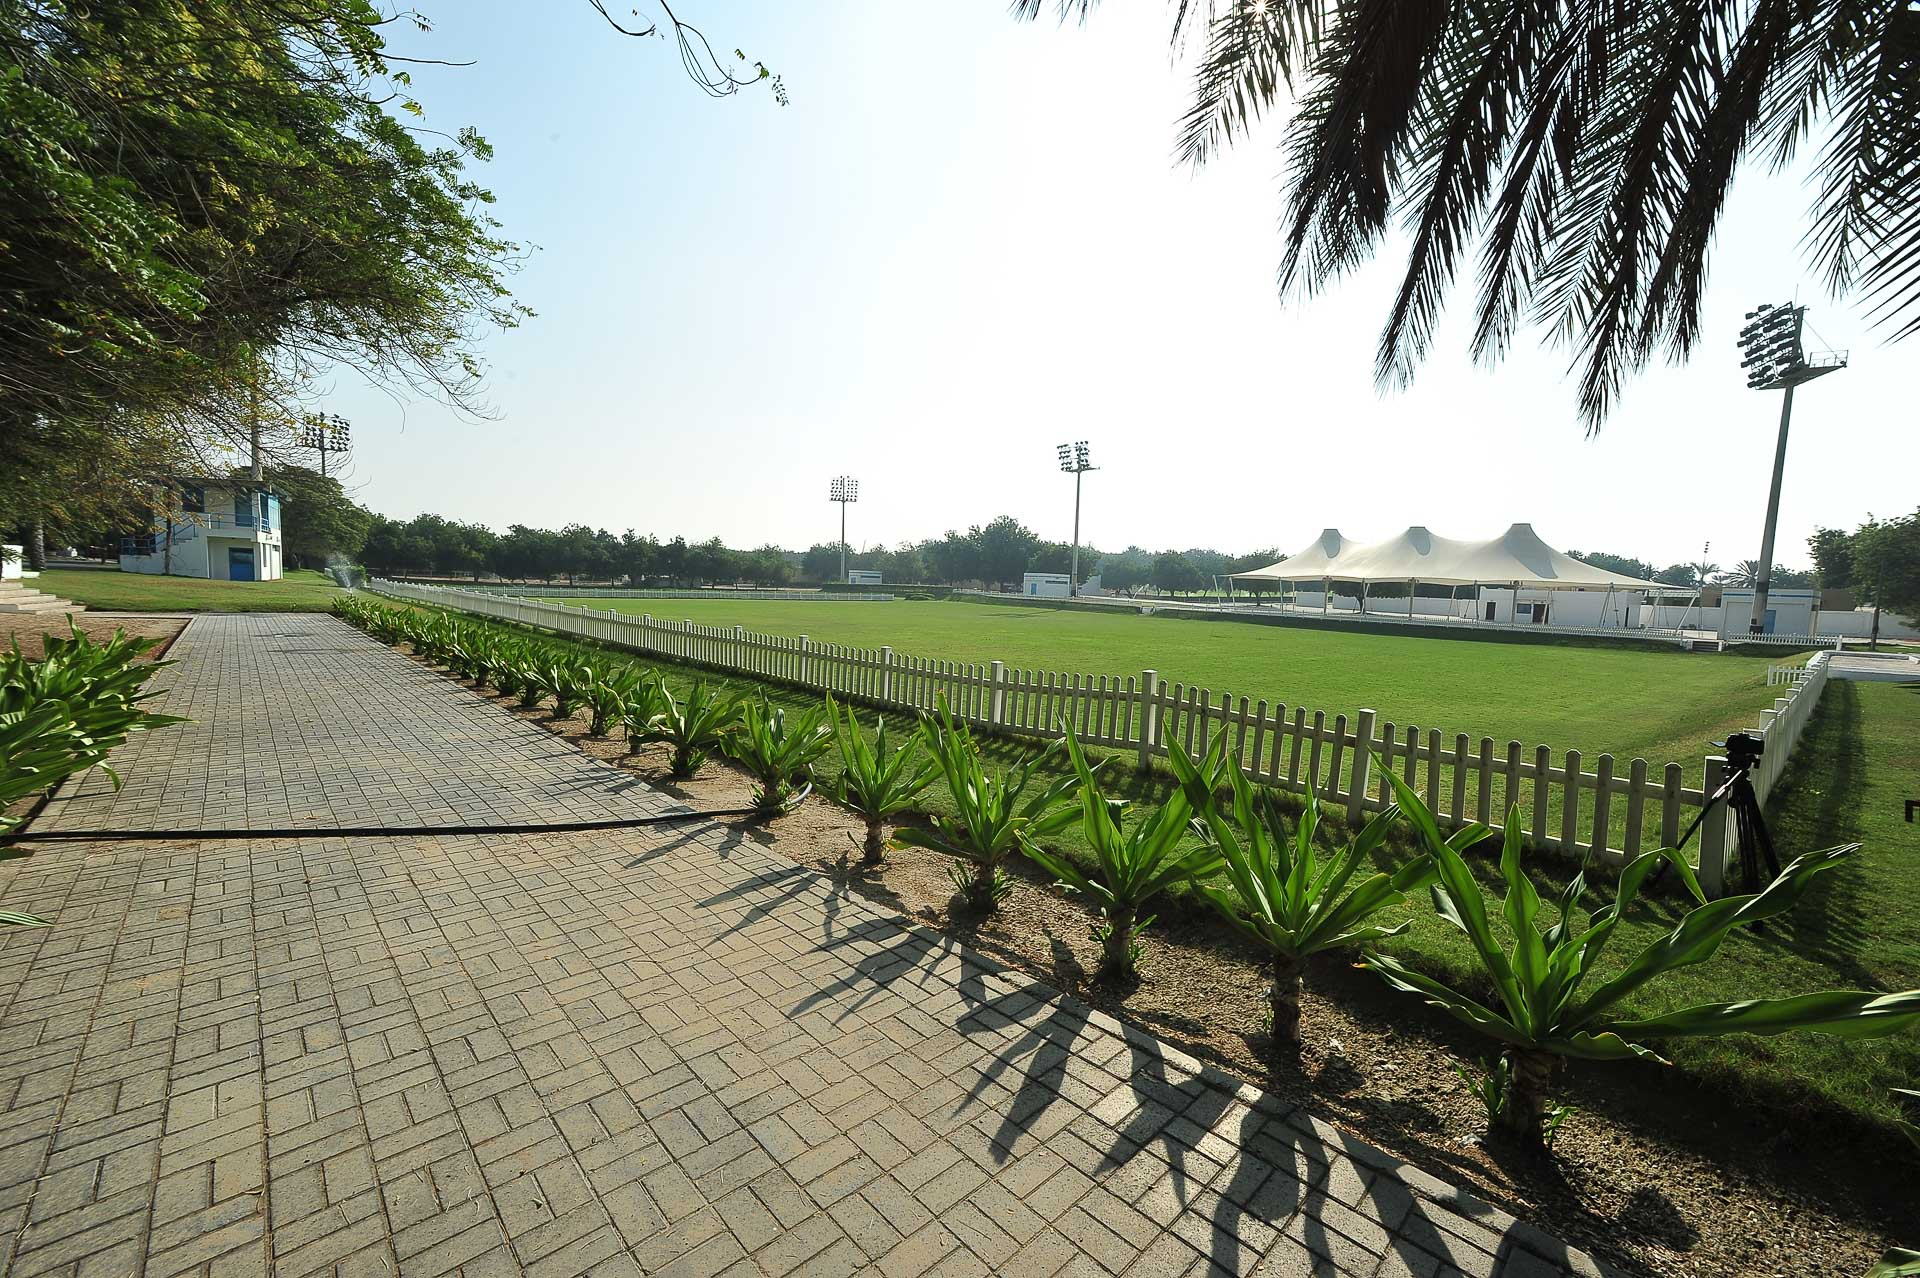 Sharjah Arabian Horse Festival - Sharjah Equestrian & Racing Club